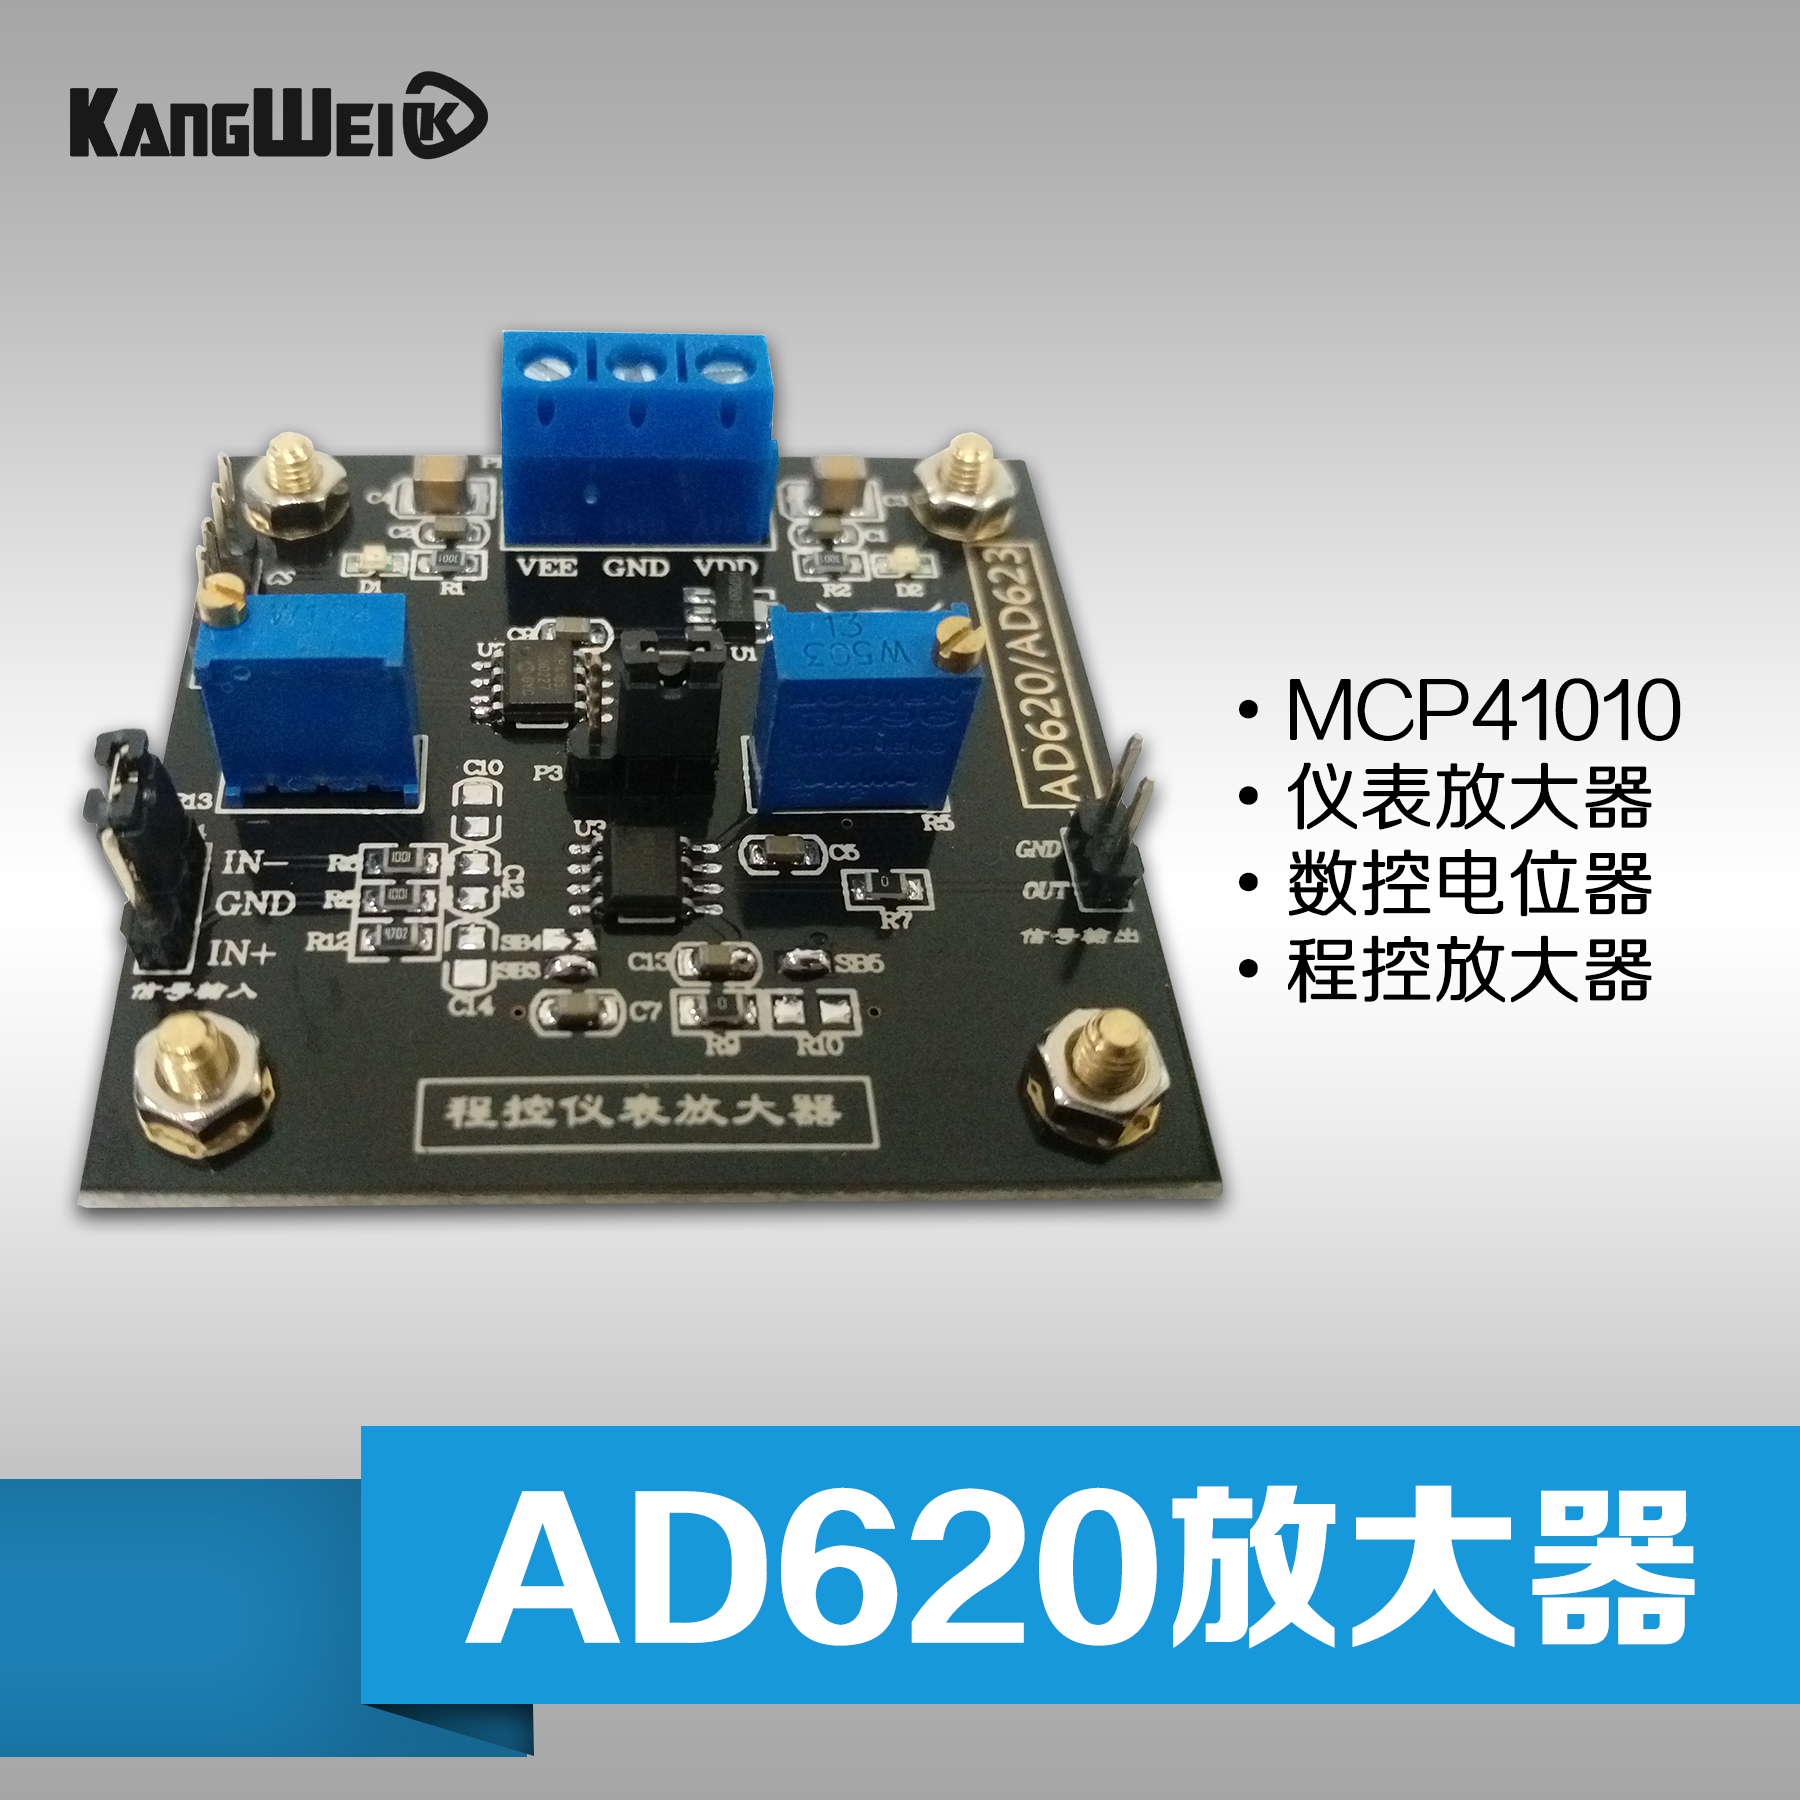 Instrument amplifier, AD620 voltage amplifier, NC potentiometer, MCP41050 differential amplifier module